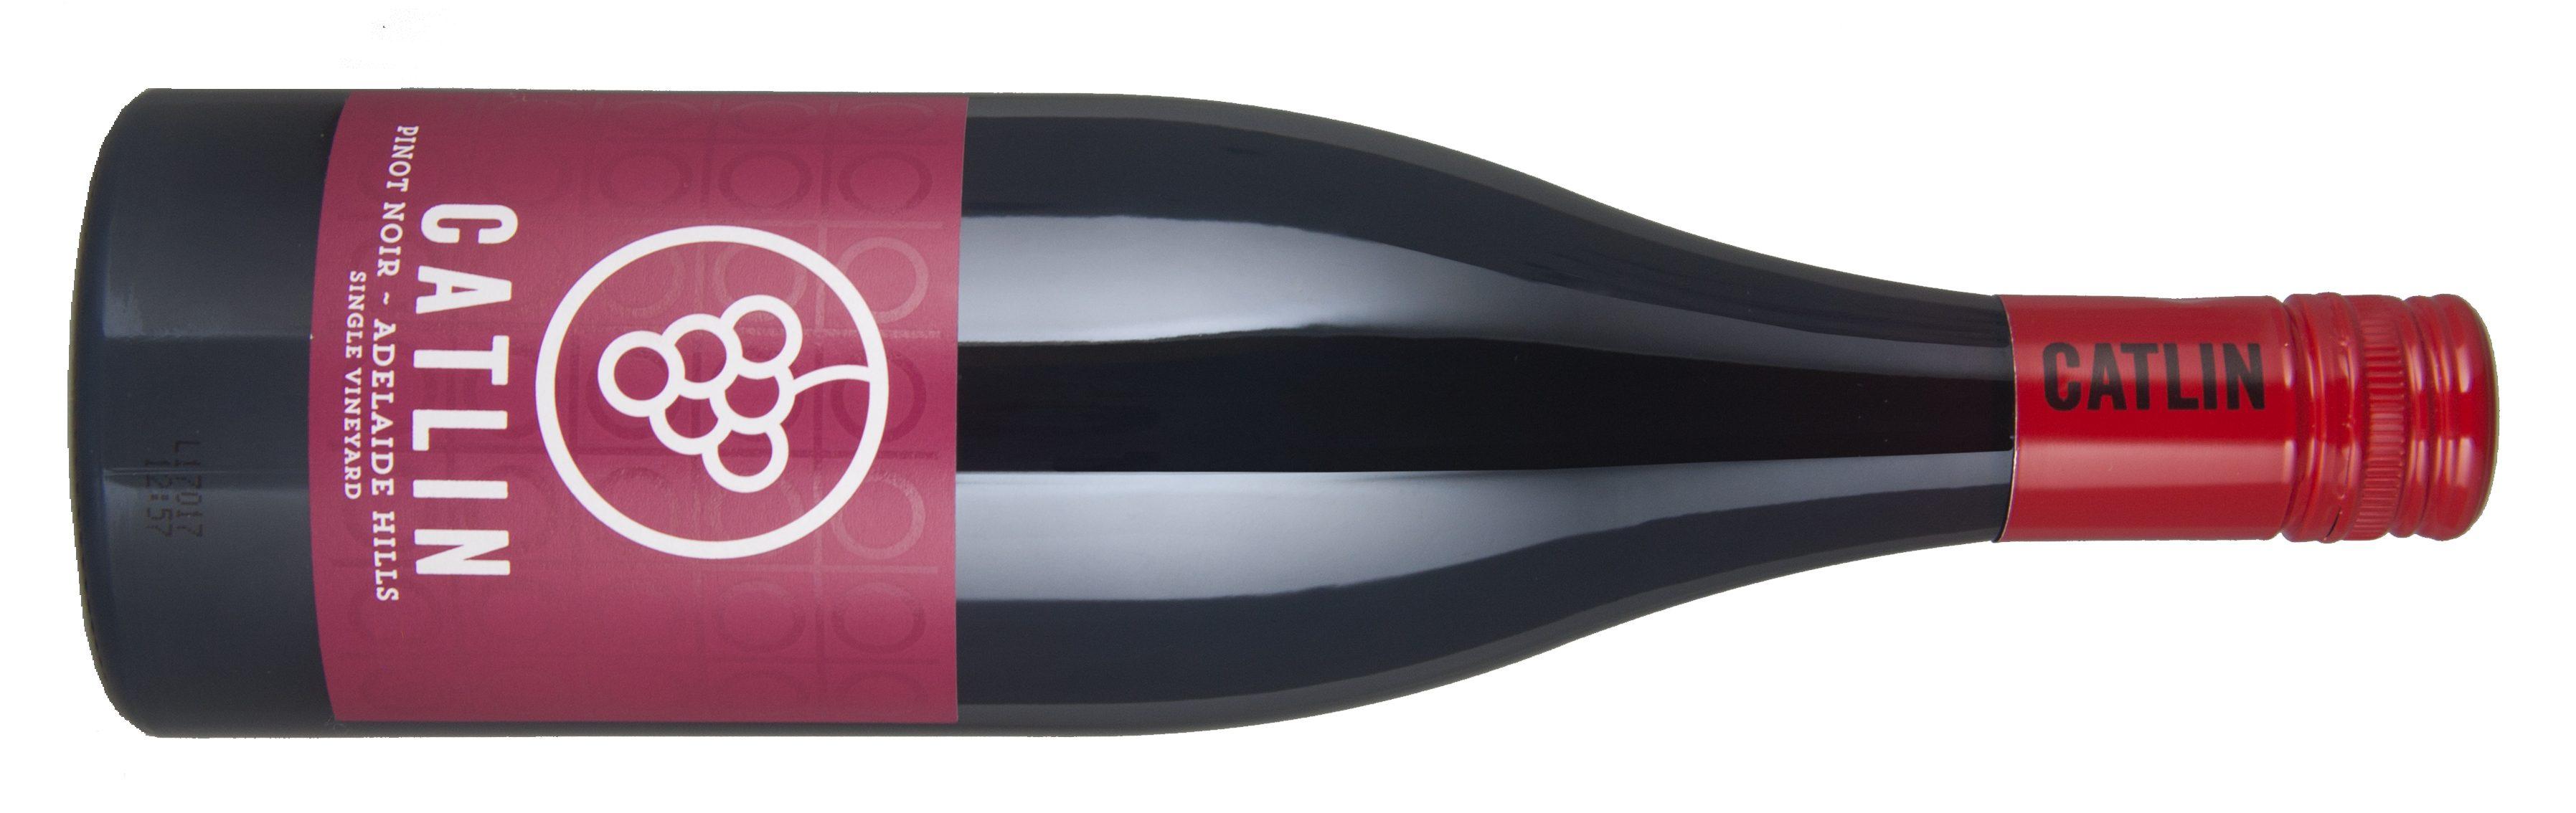 2016 Catlin Red Label Pinot Noir